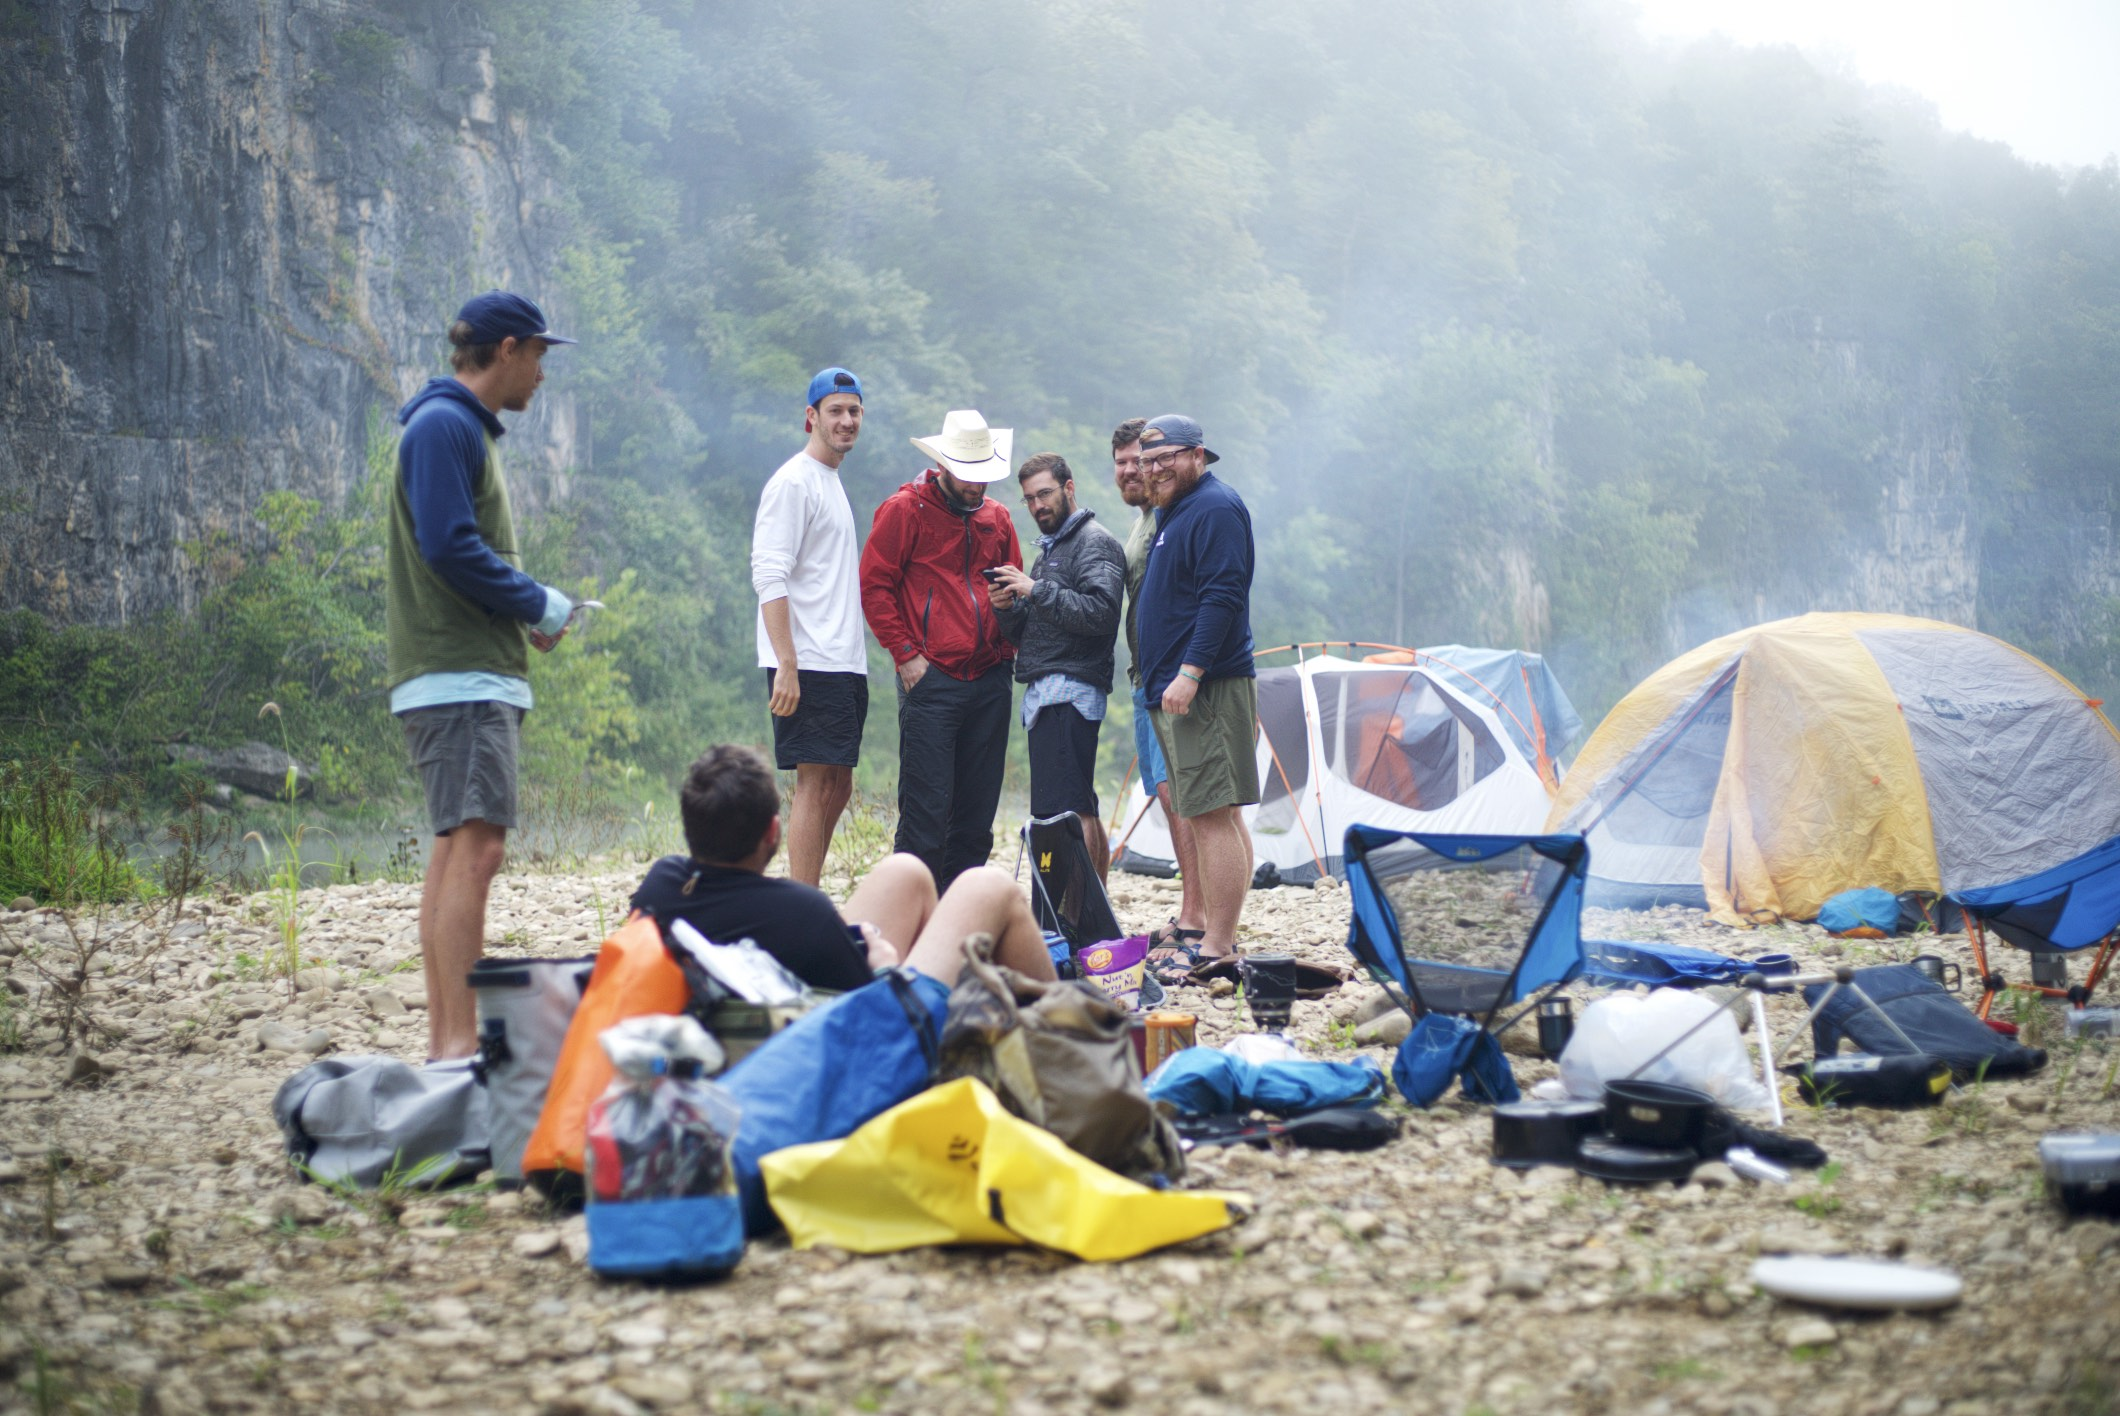 I'm sure that at this moment, Mark has just shouted some hilarious insult at the group as they map out the next day's paddle.